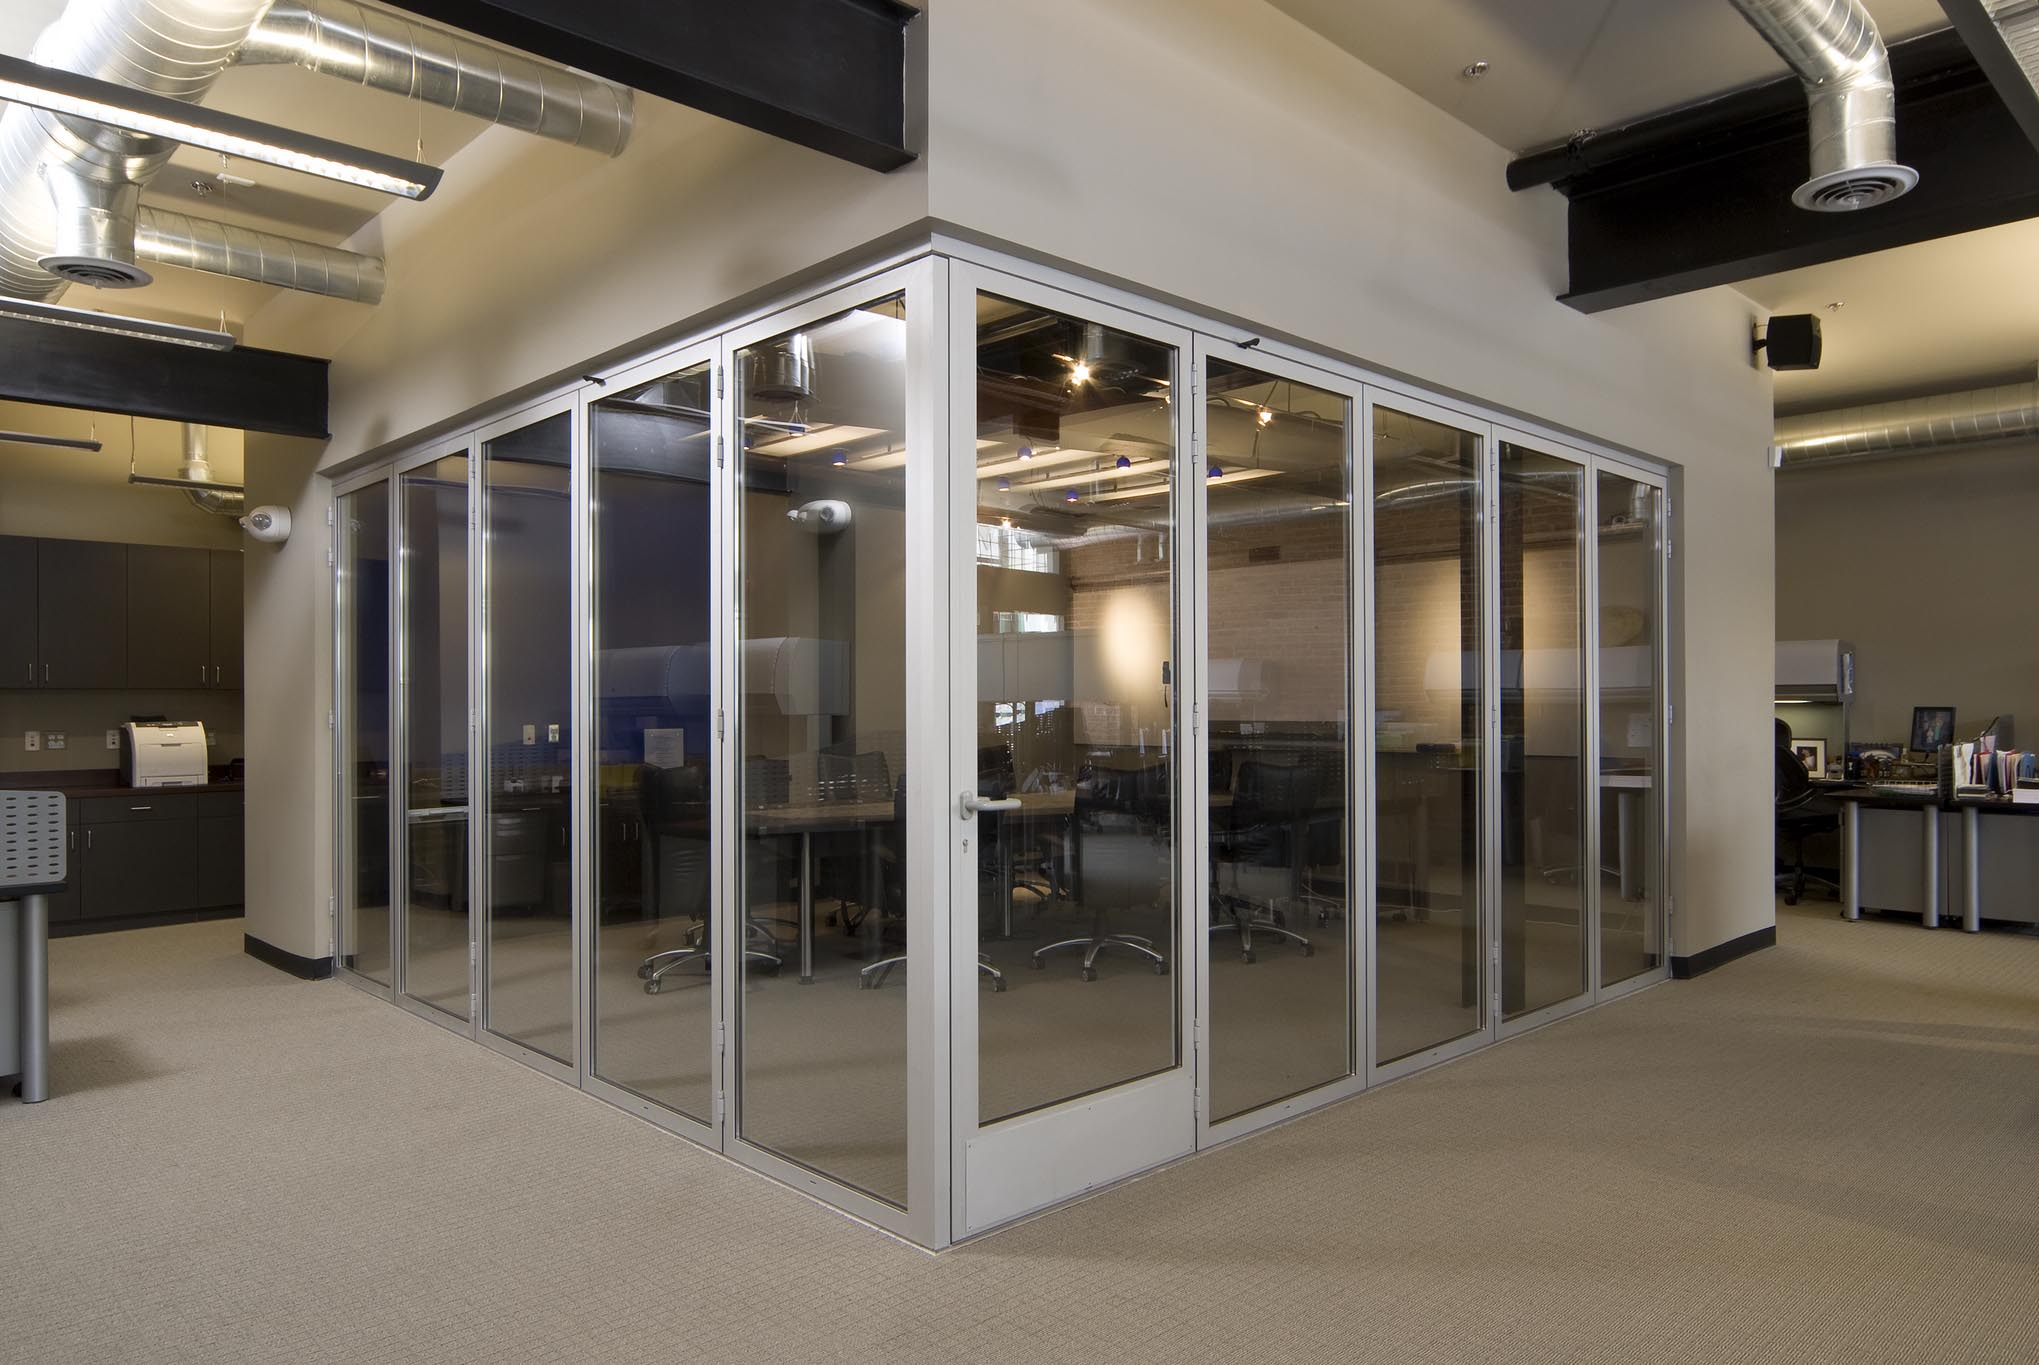 NanaWall SL45 Office & Clear Blue Office - All - Gallery | NanaWall - Operable Glass Wall ... Pezcame.Com